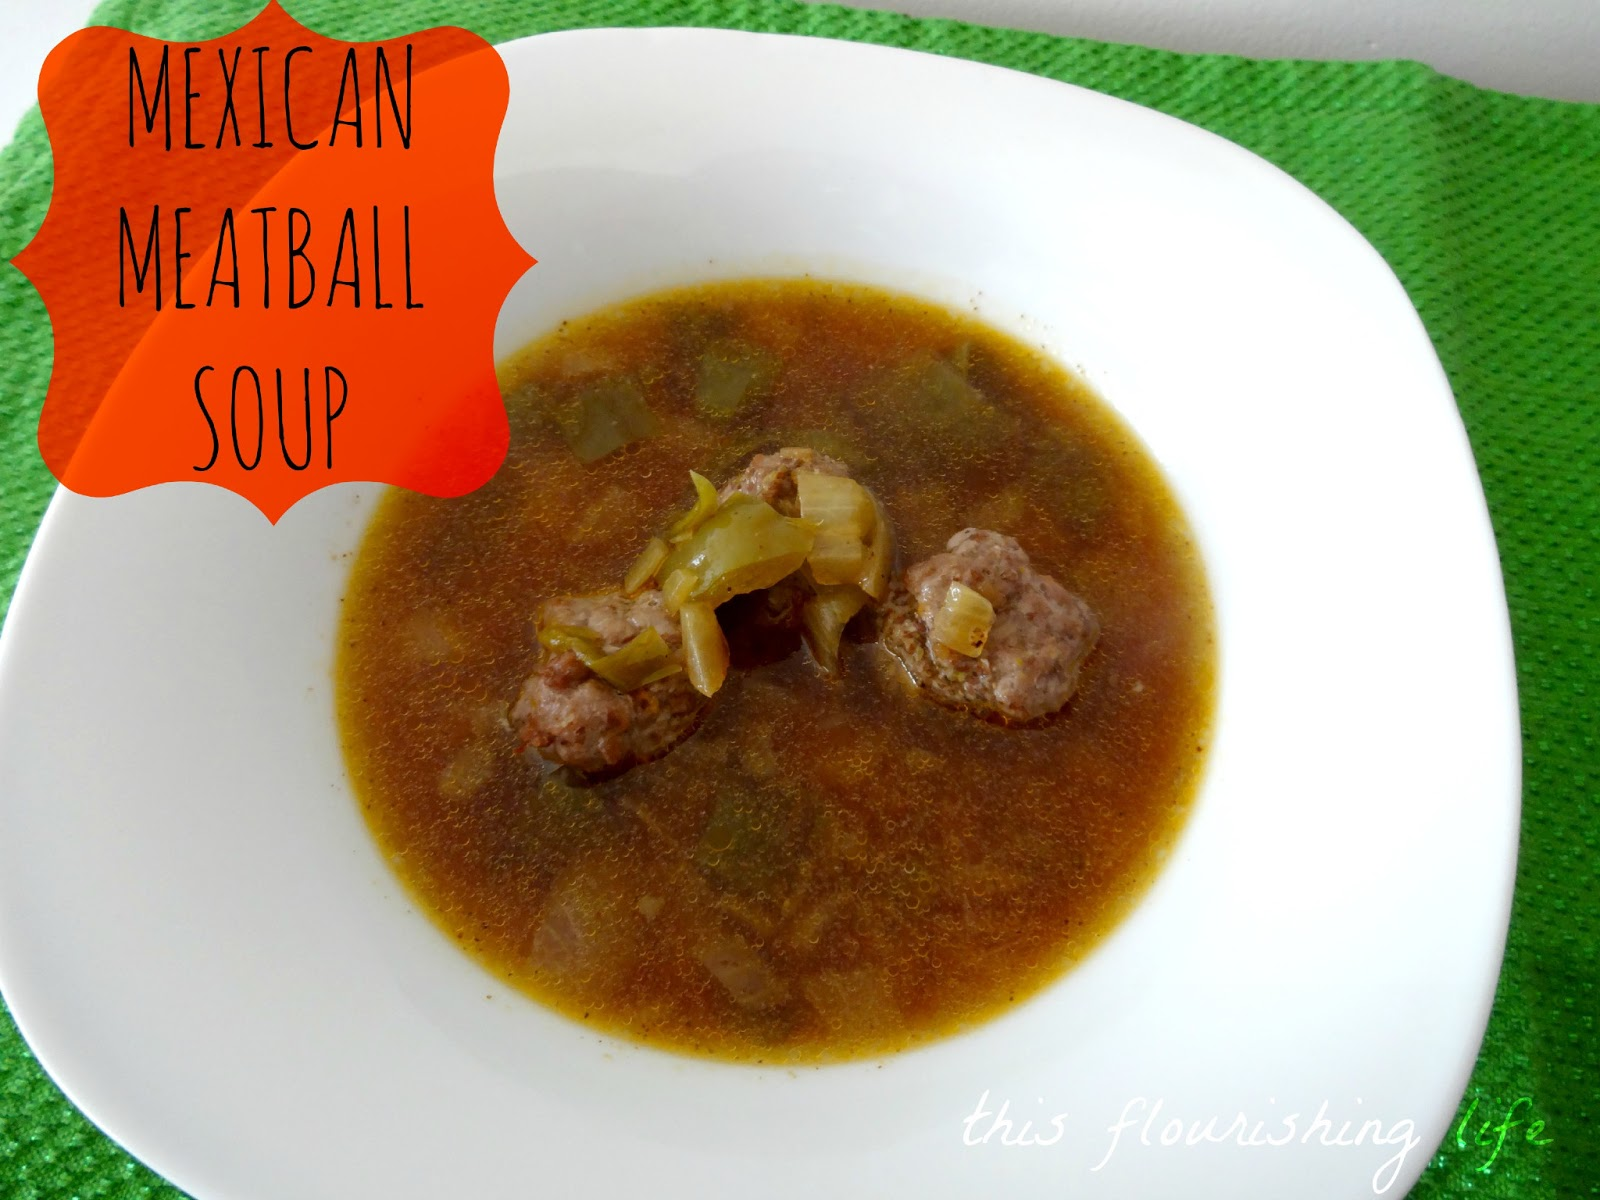 Recipe: Mexican Meatball Soup - This Flourishing Life